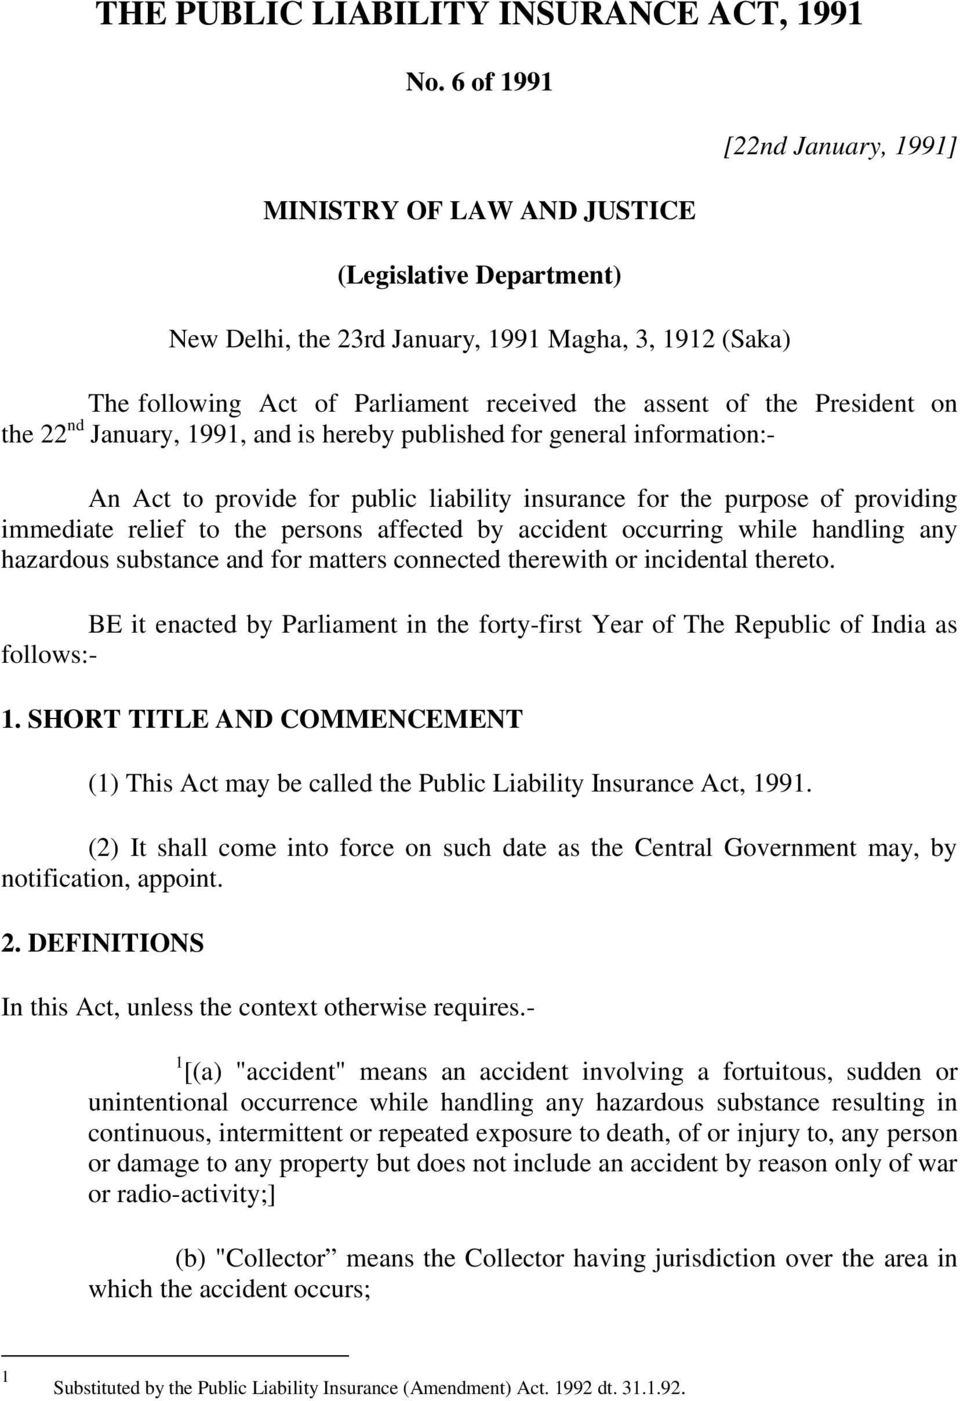 President on the 22 nd January, 99, and is hereby published for general information:- An Act to provide for public liability insurance for the purpose of providing immediate relief to the persons